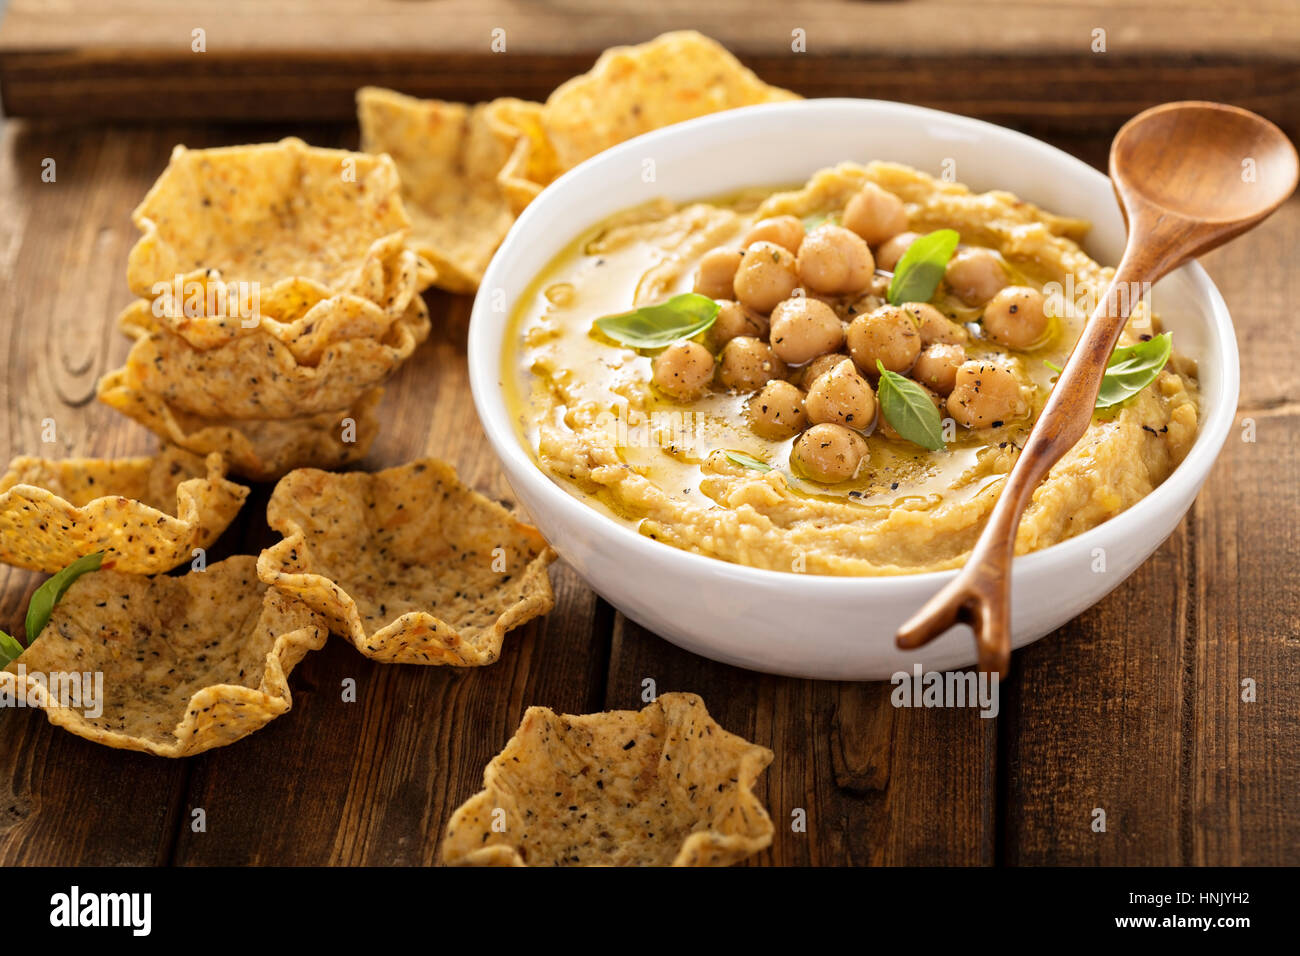 Homemade hummus with tortilla bowls, small appetizers - Stock Image